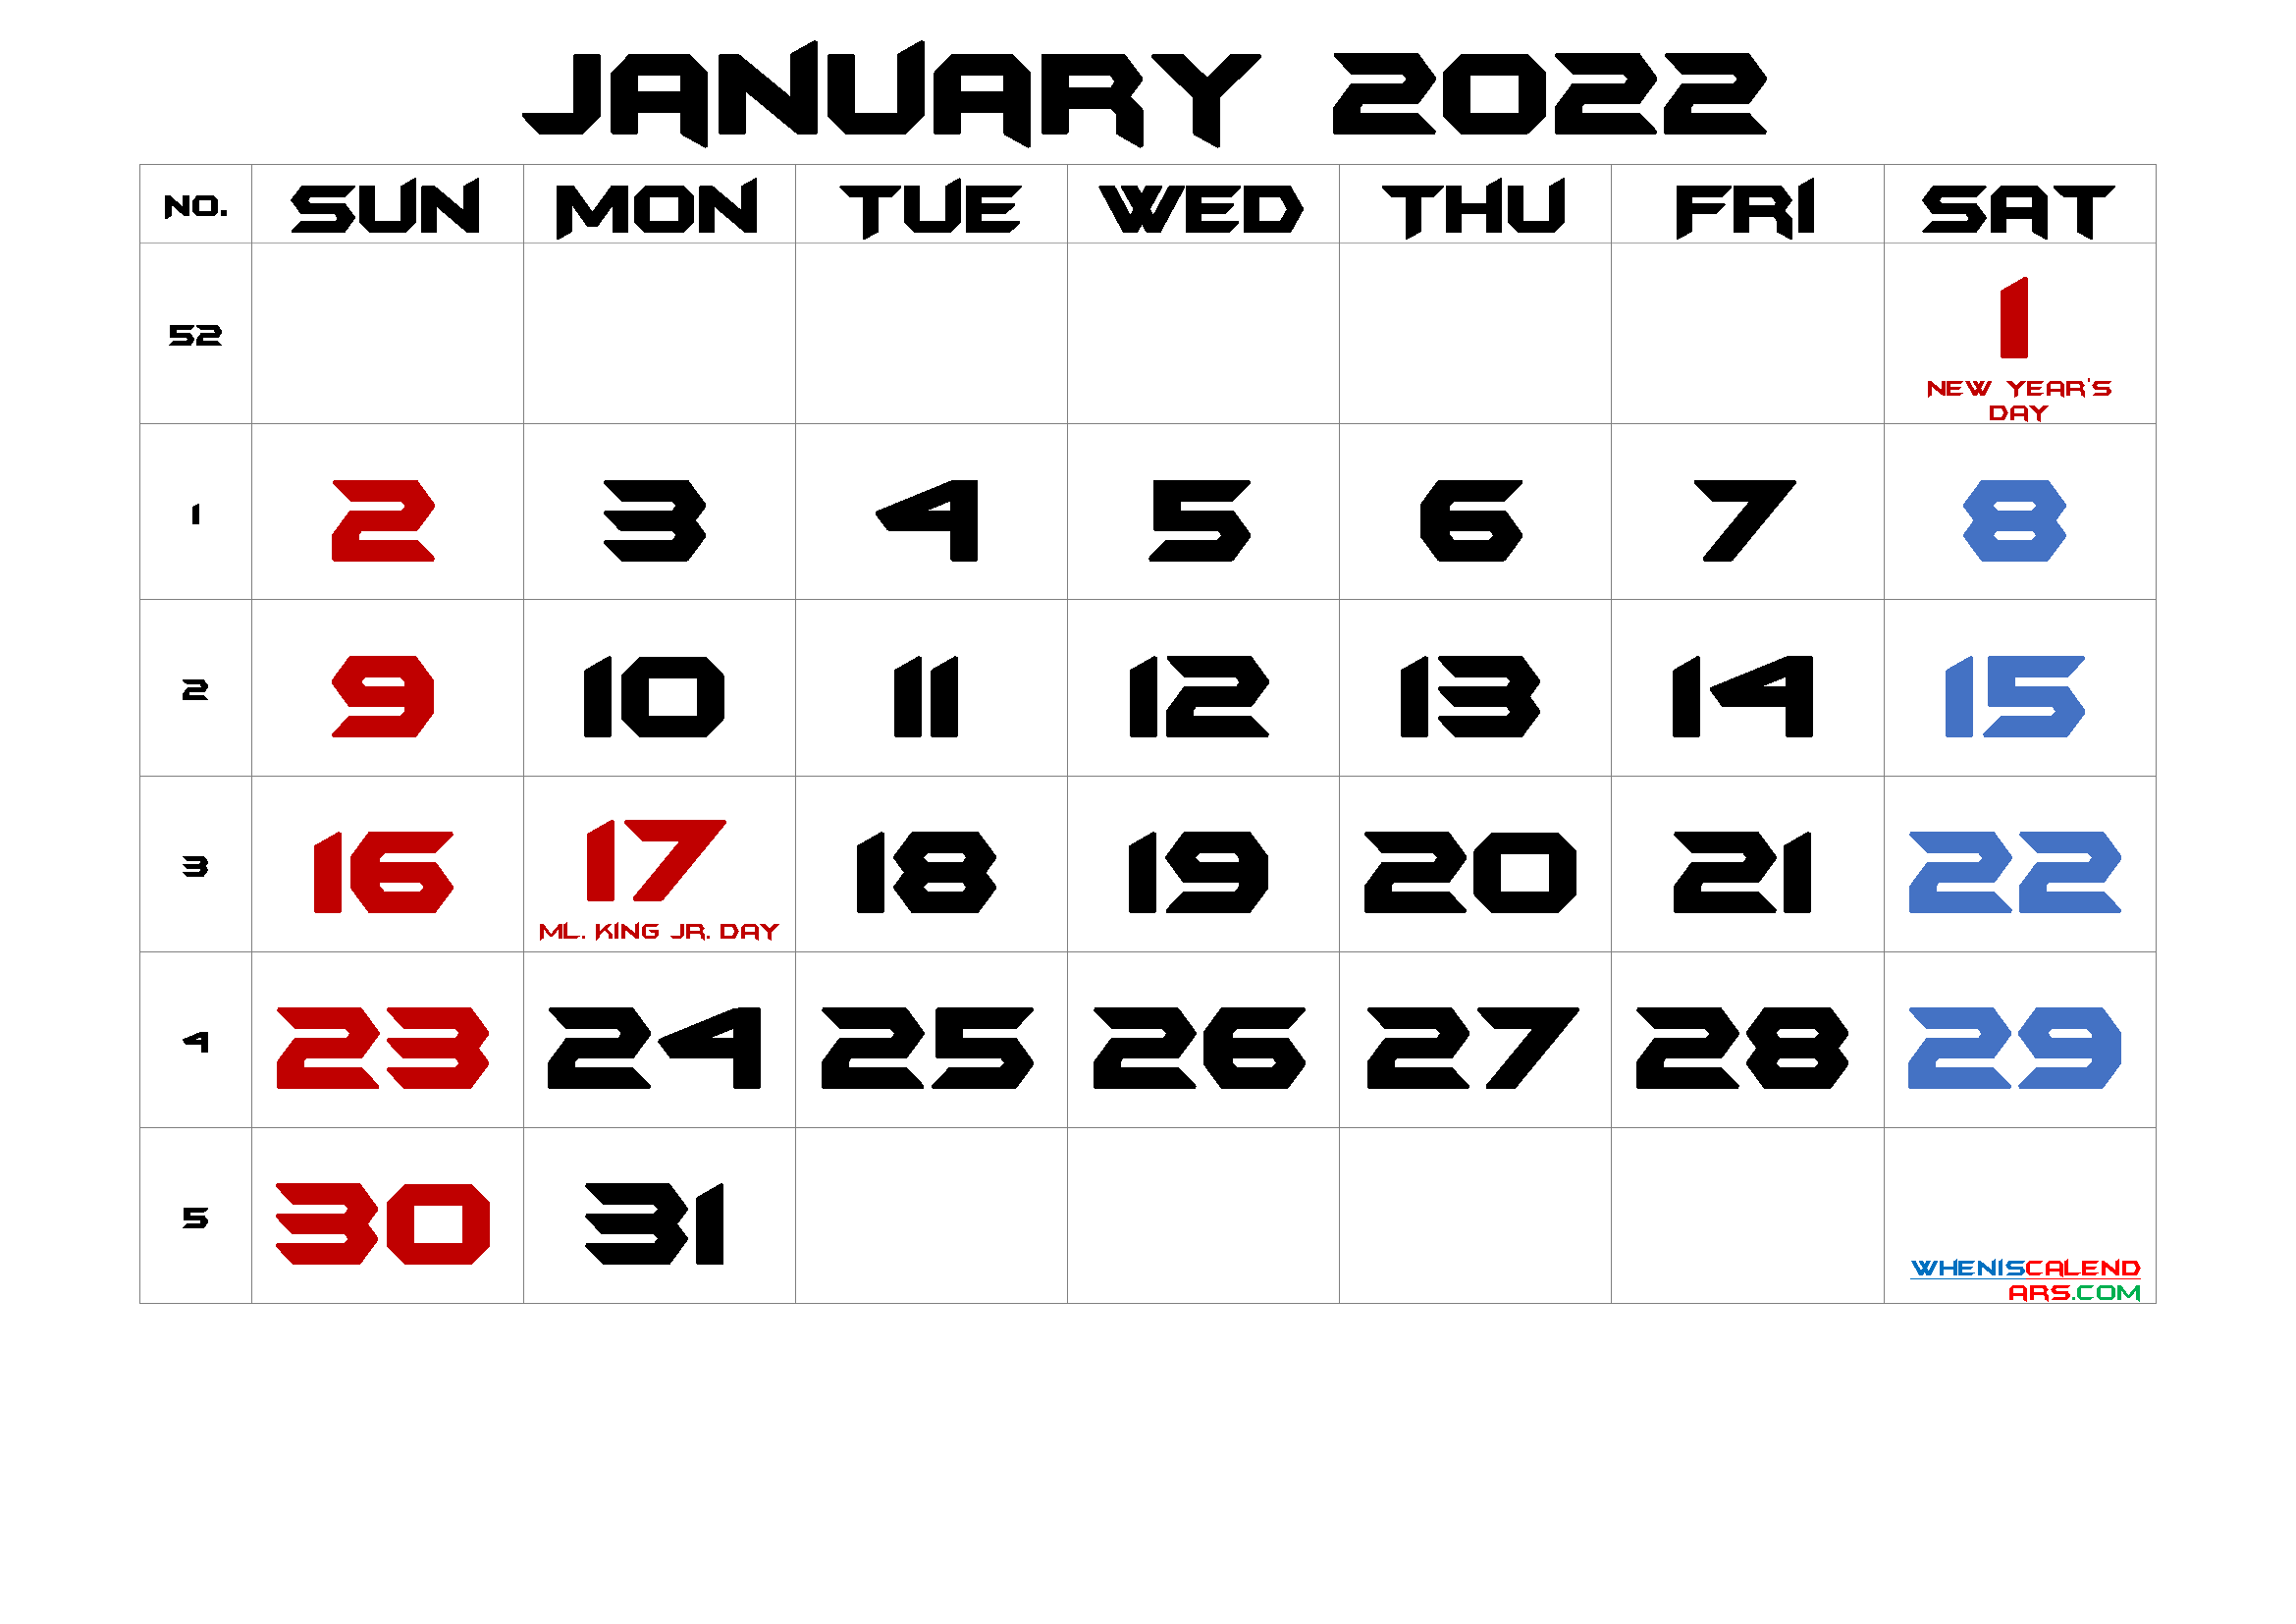 January 2022 Printable Calendar With Holidays in Free Printable Calendar January 2022 With Holidays